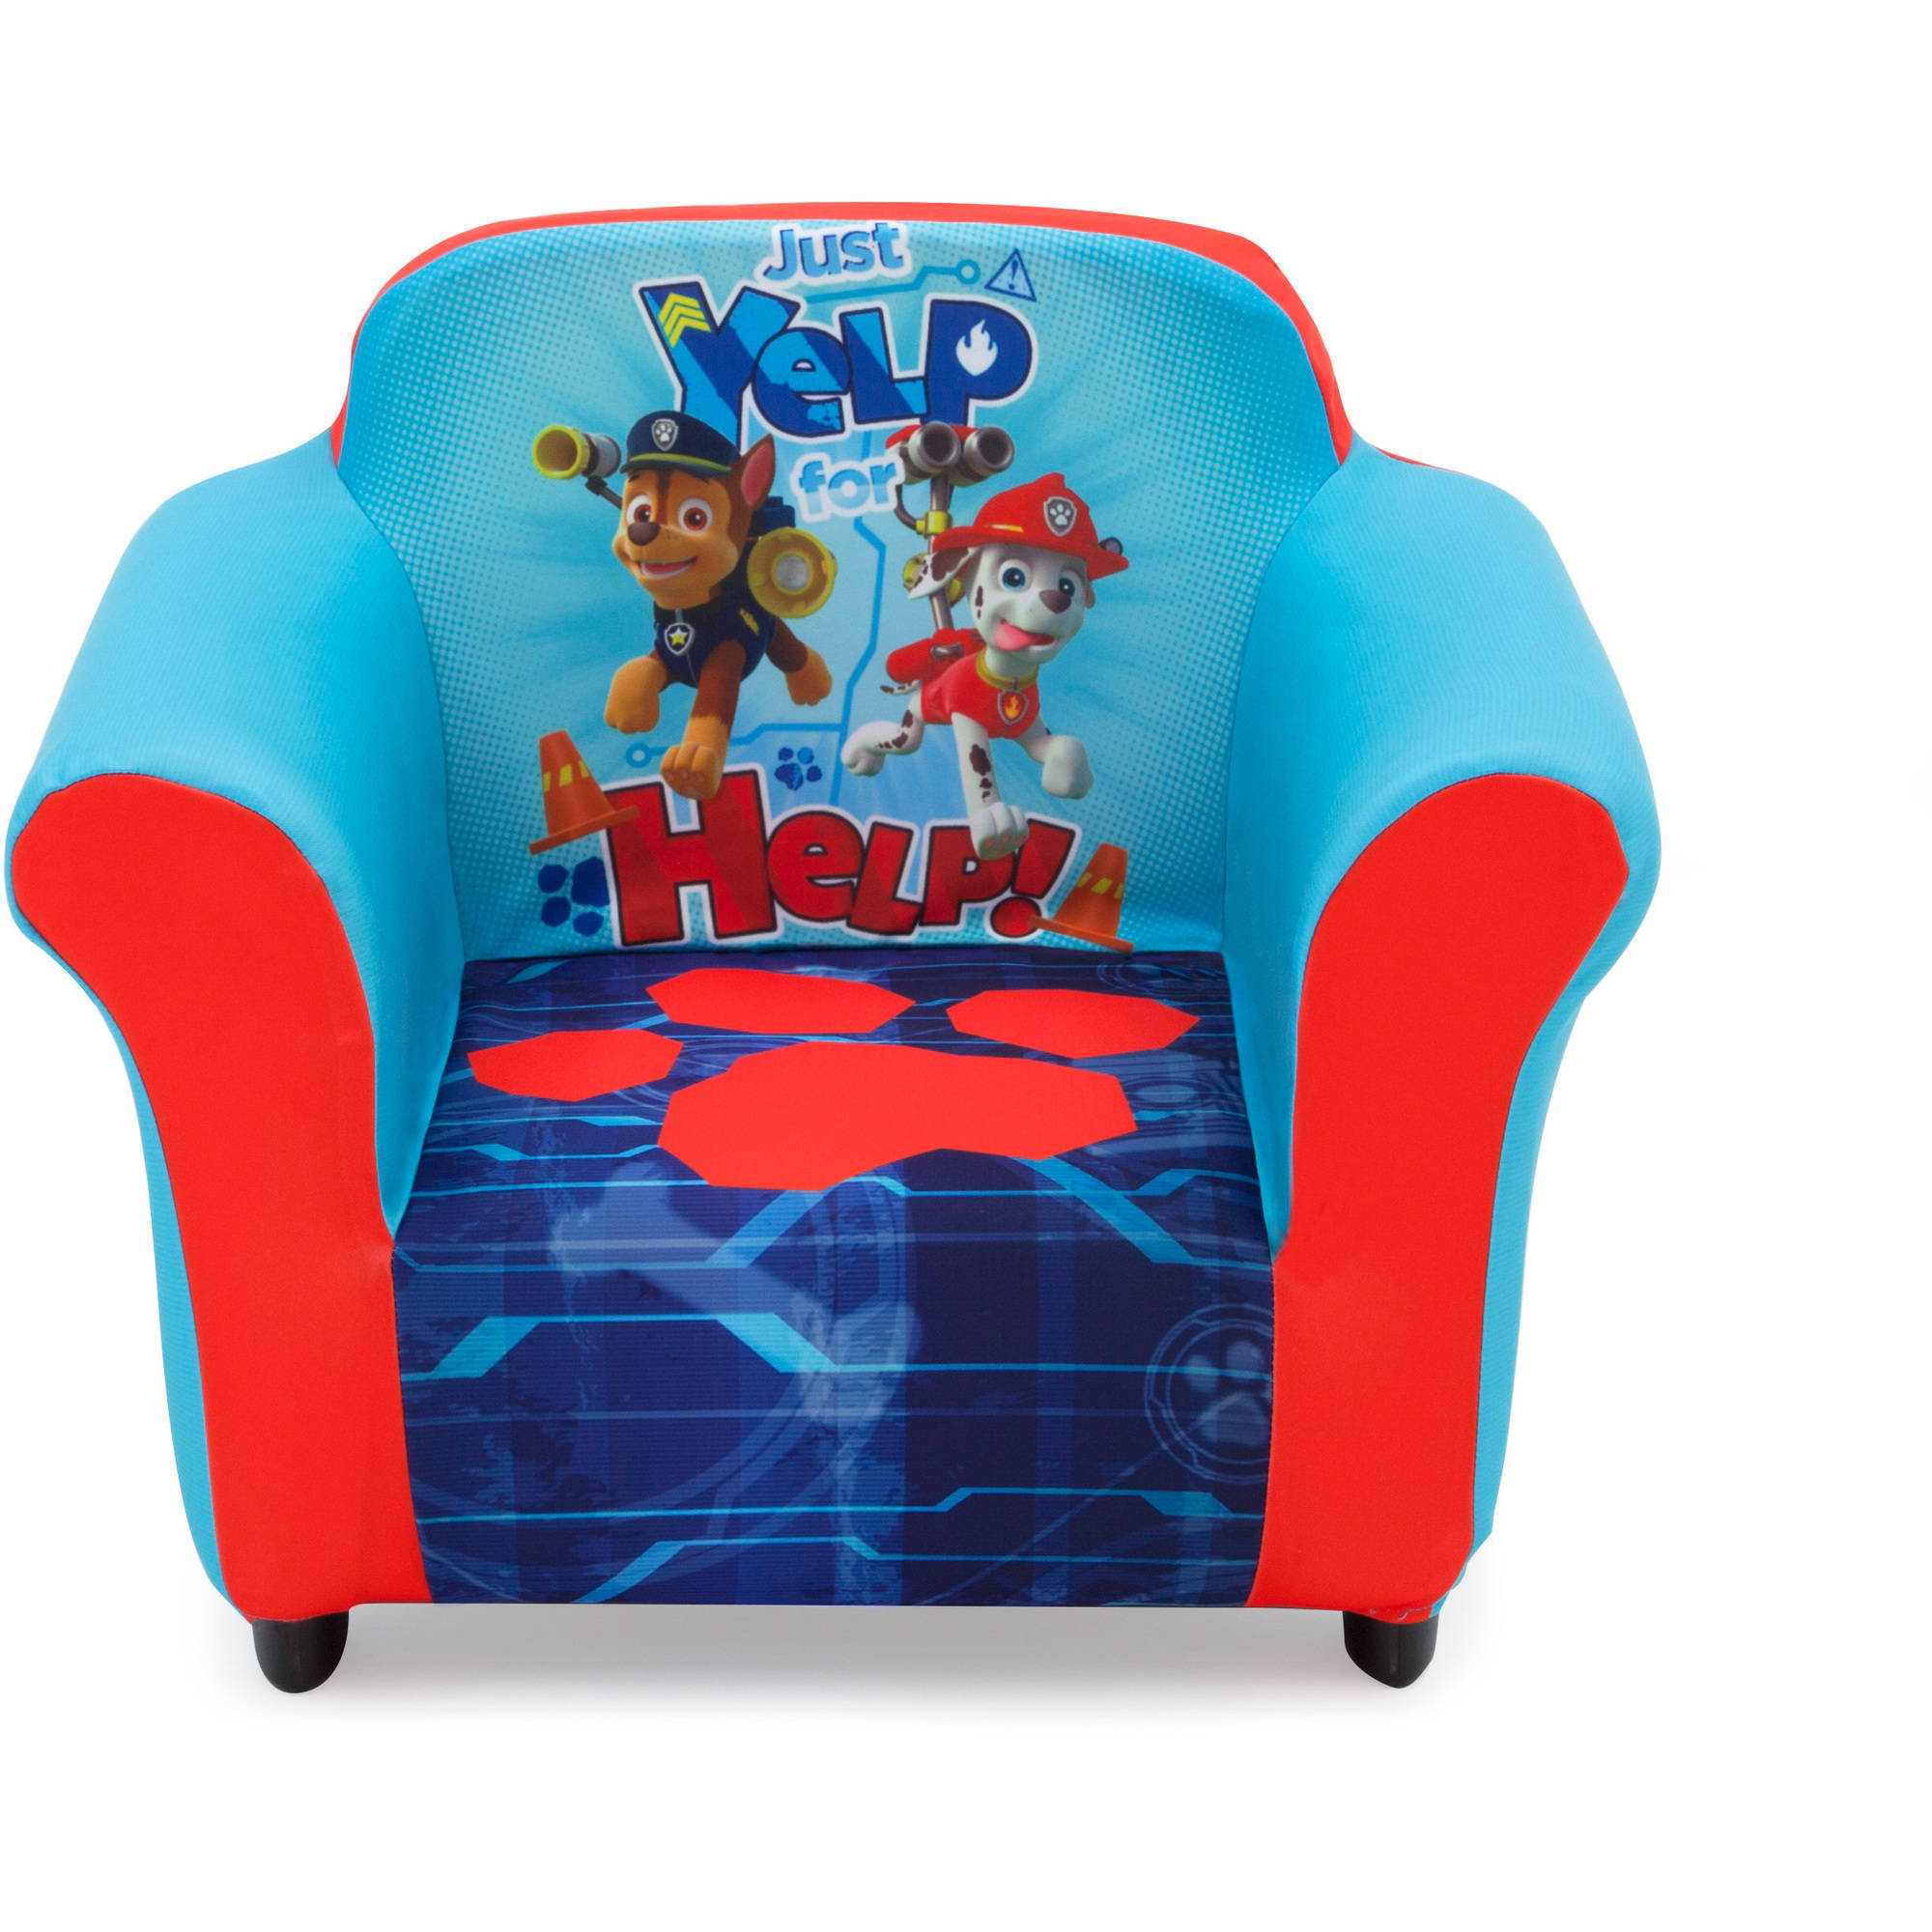 Nick Jr. PAW Patrol Plastic Frame Upholstered Chair by Delta Children